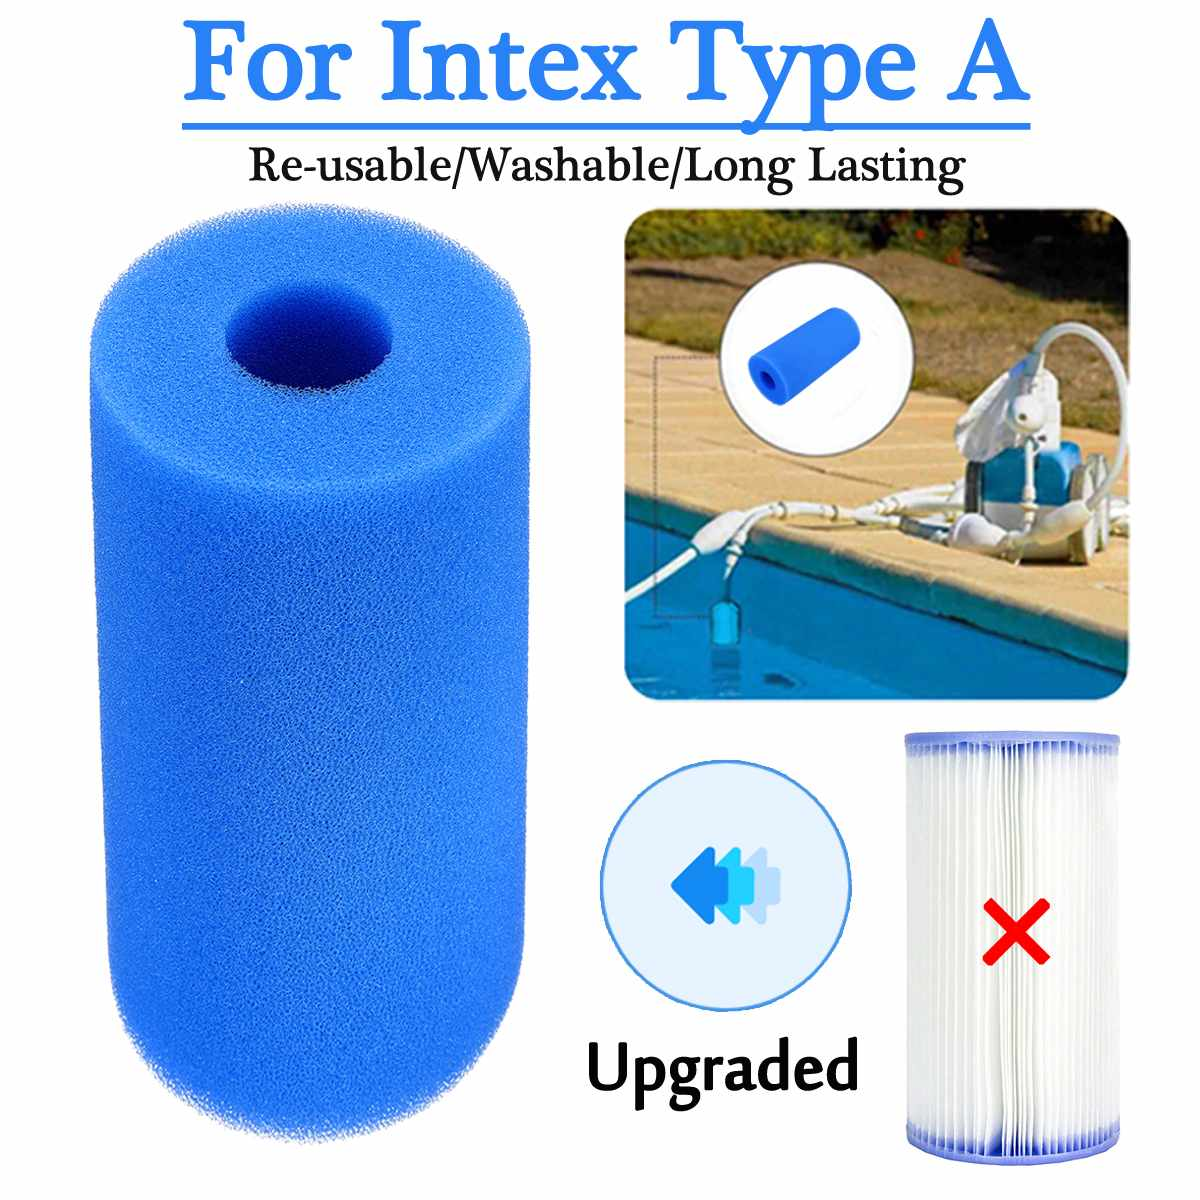 SGODDE 3 Sizes Swimming Pool Filter Reusable Washable Sponge Cartridge Foam Suitable